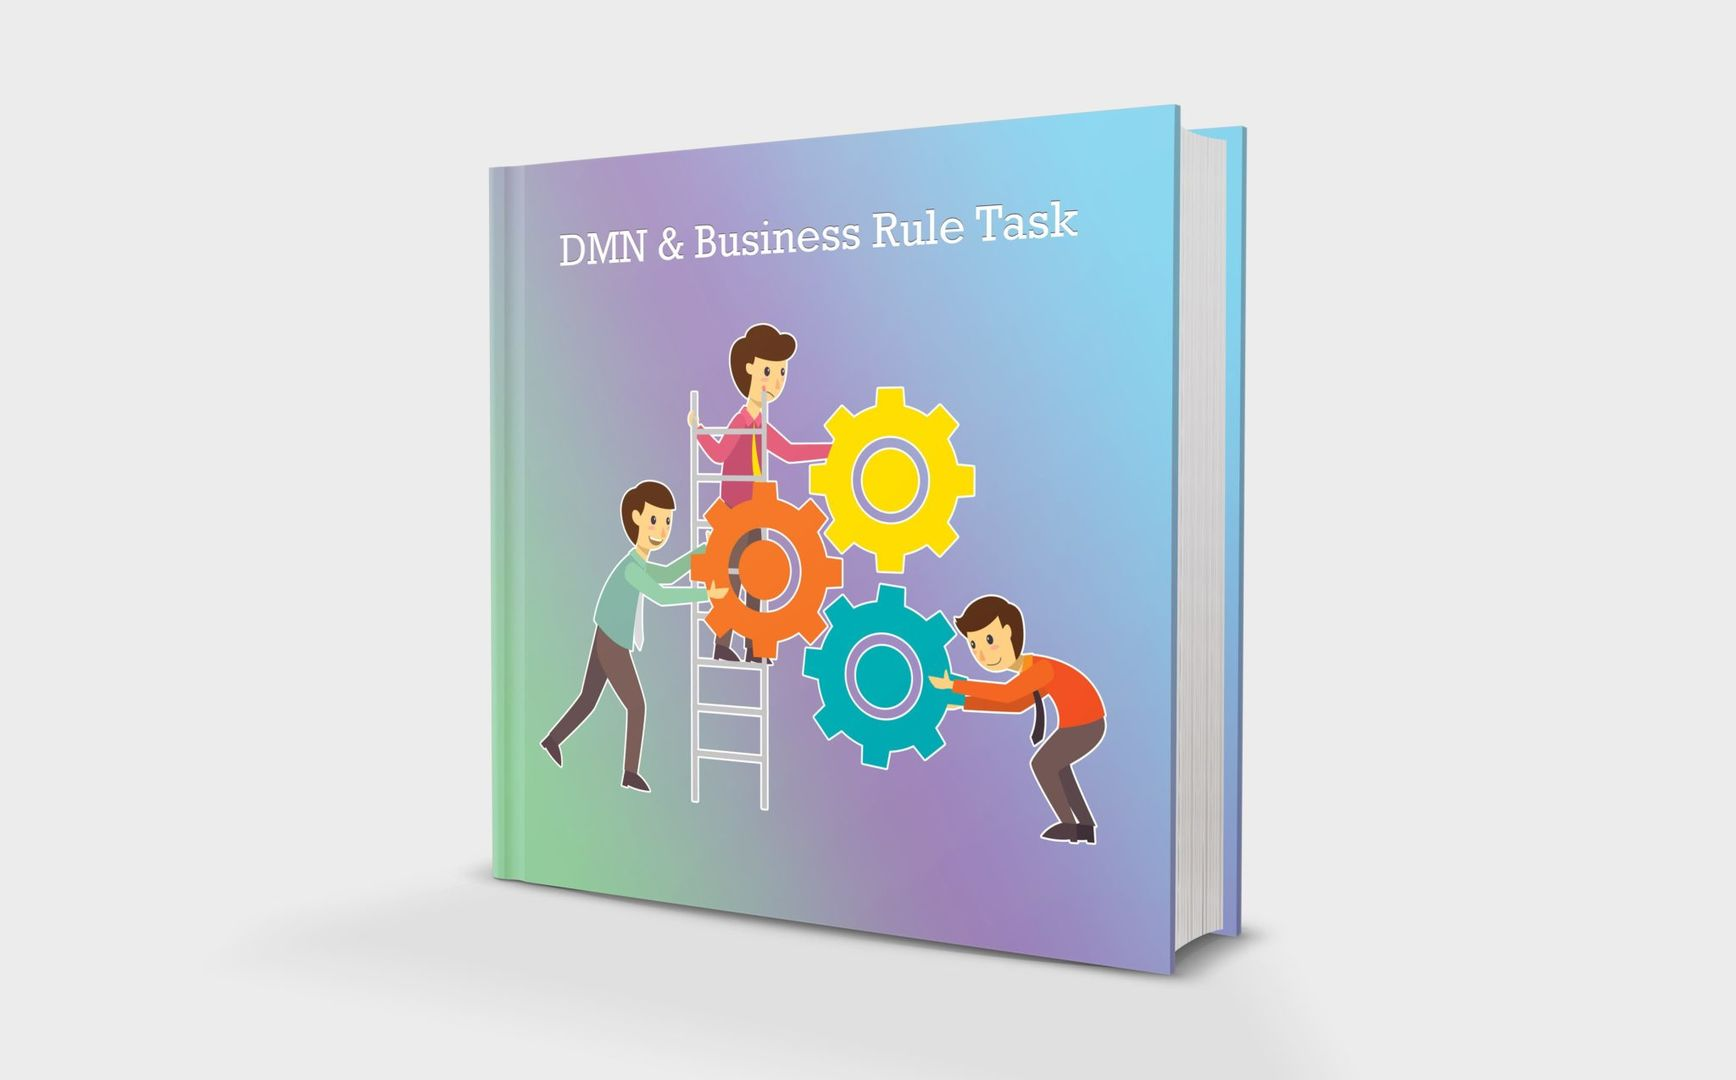 DMN and Business Rule Task